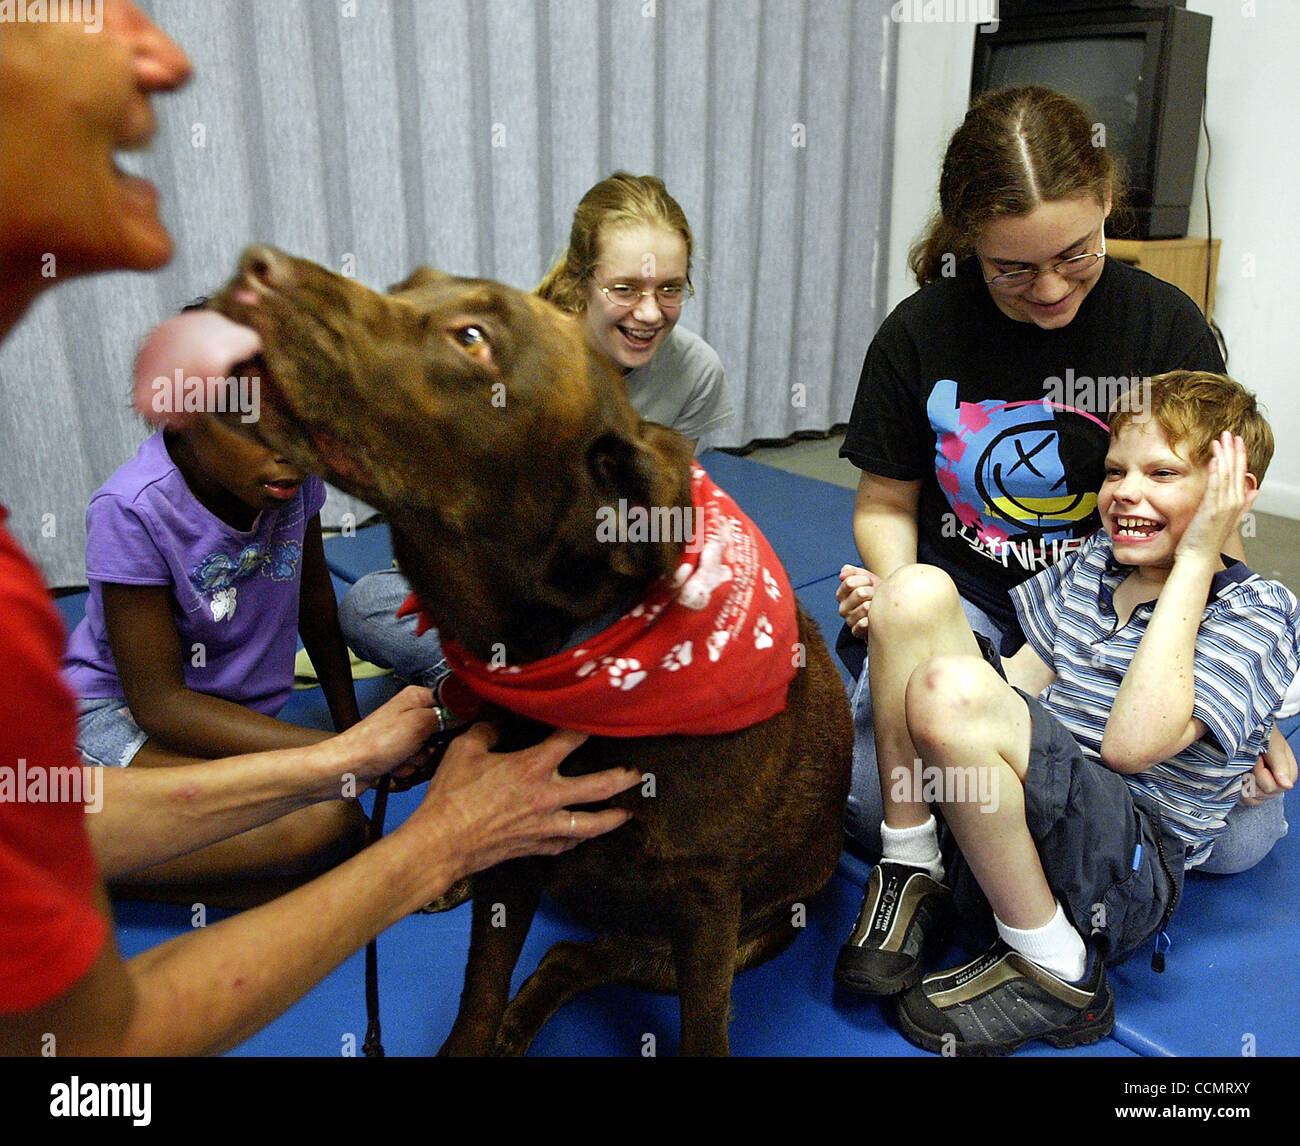 LIVE METRO, 061604, STUART.....Ian Allore, 11, right, giggles as therapy dog, Mya, a chocolate lab, licks her owner, Stock Photo